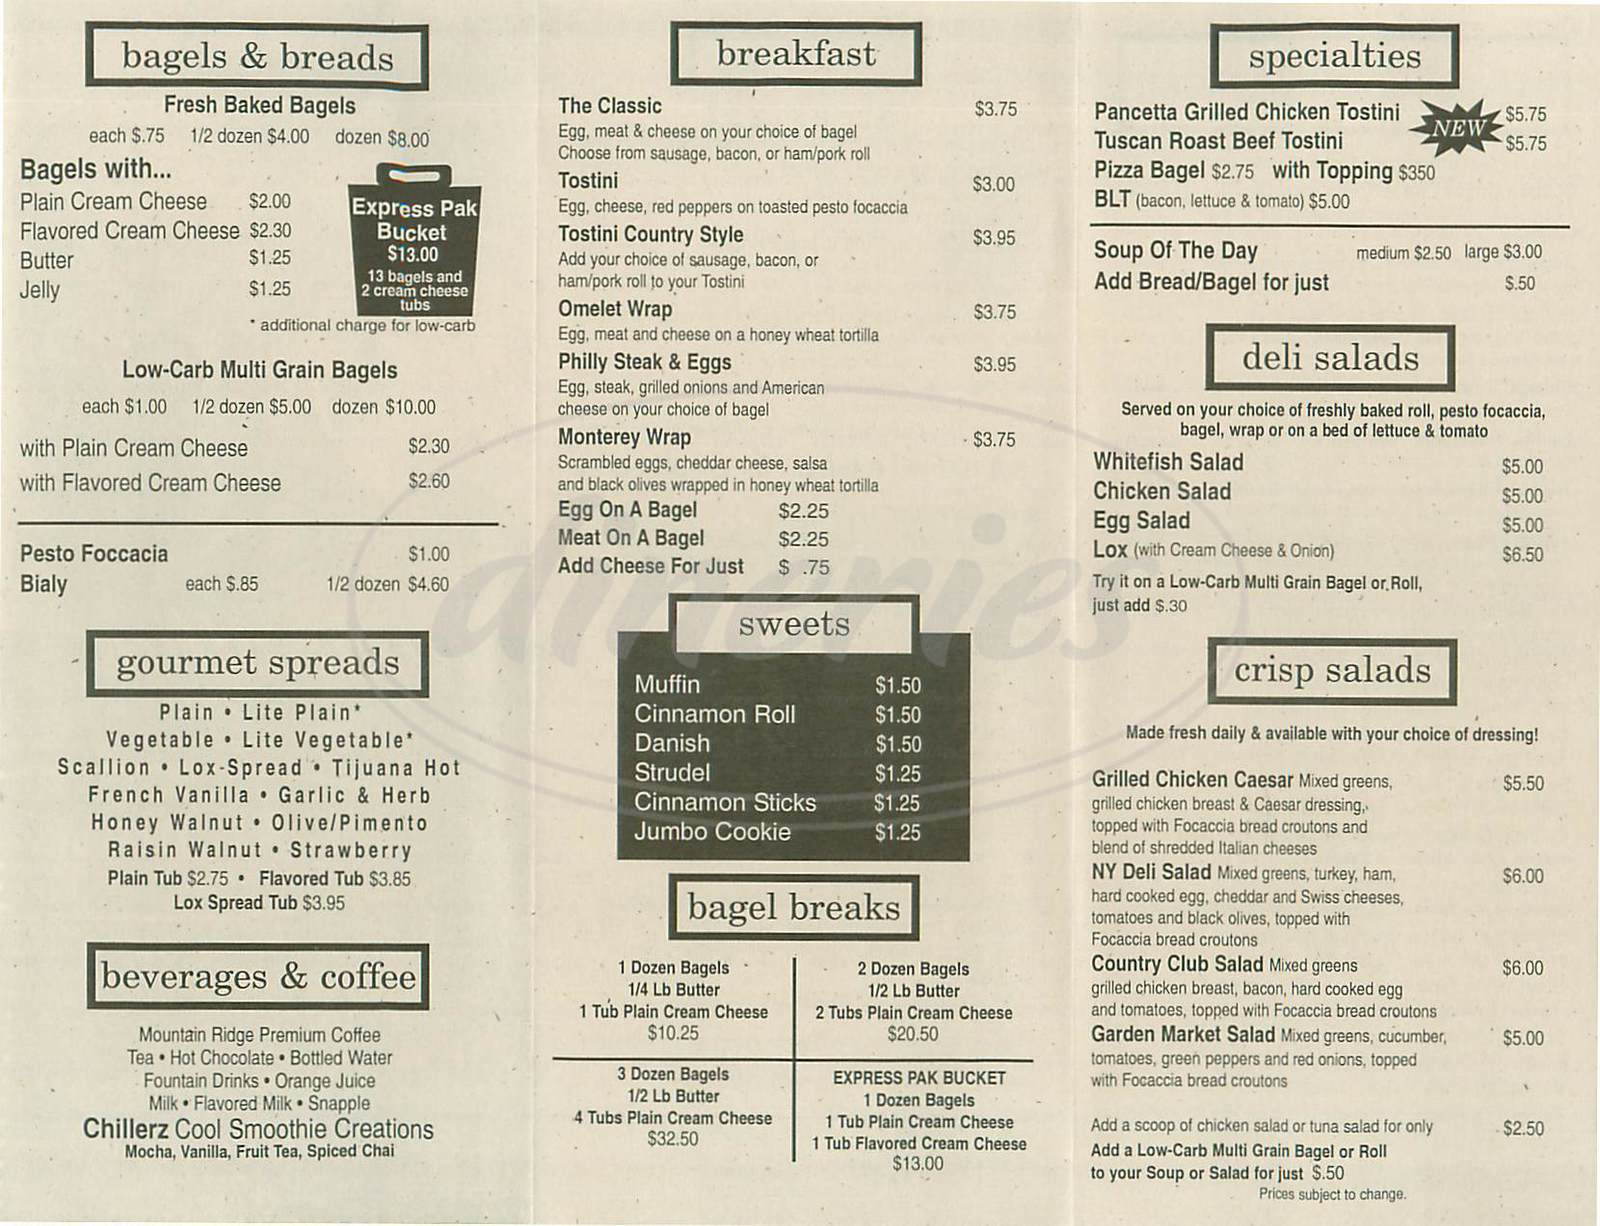 menu for Manhattan Bagel